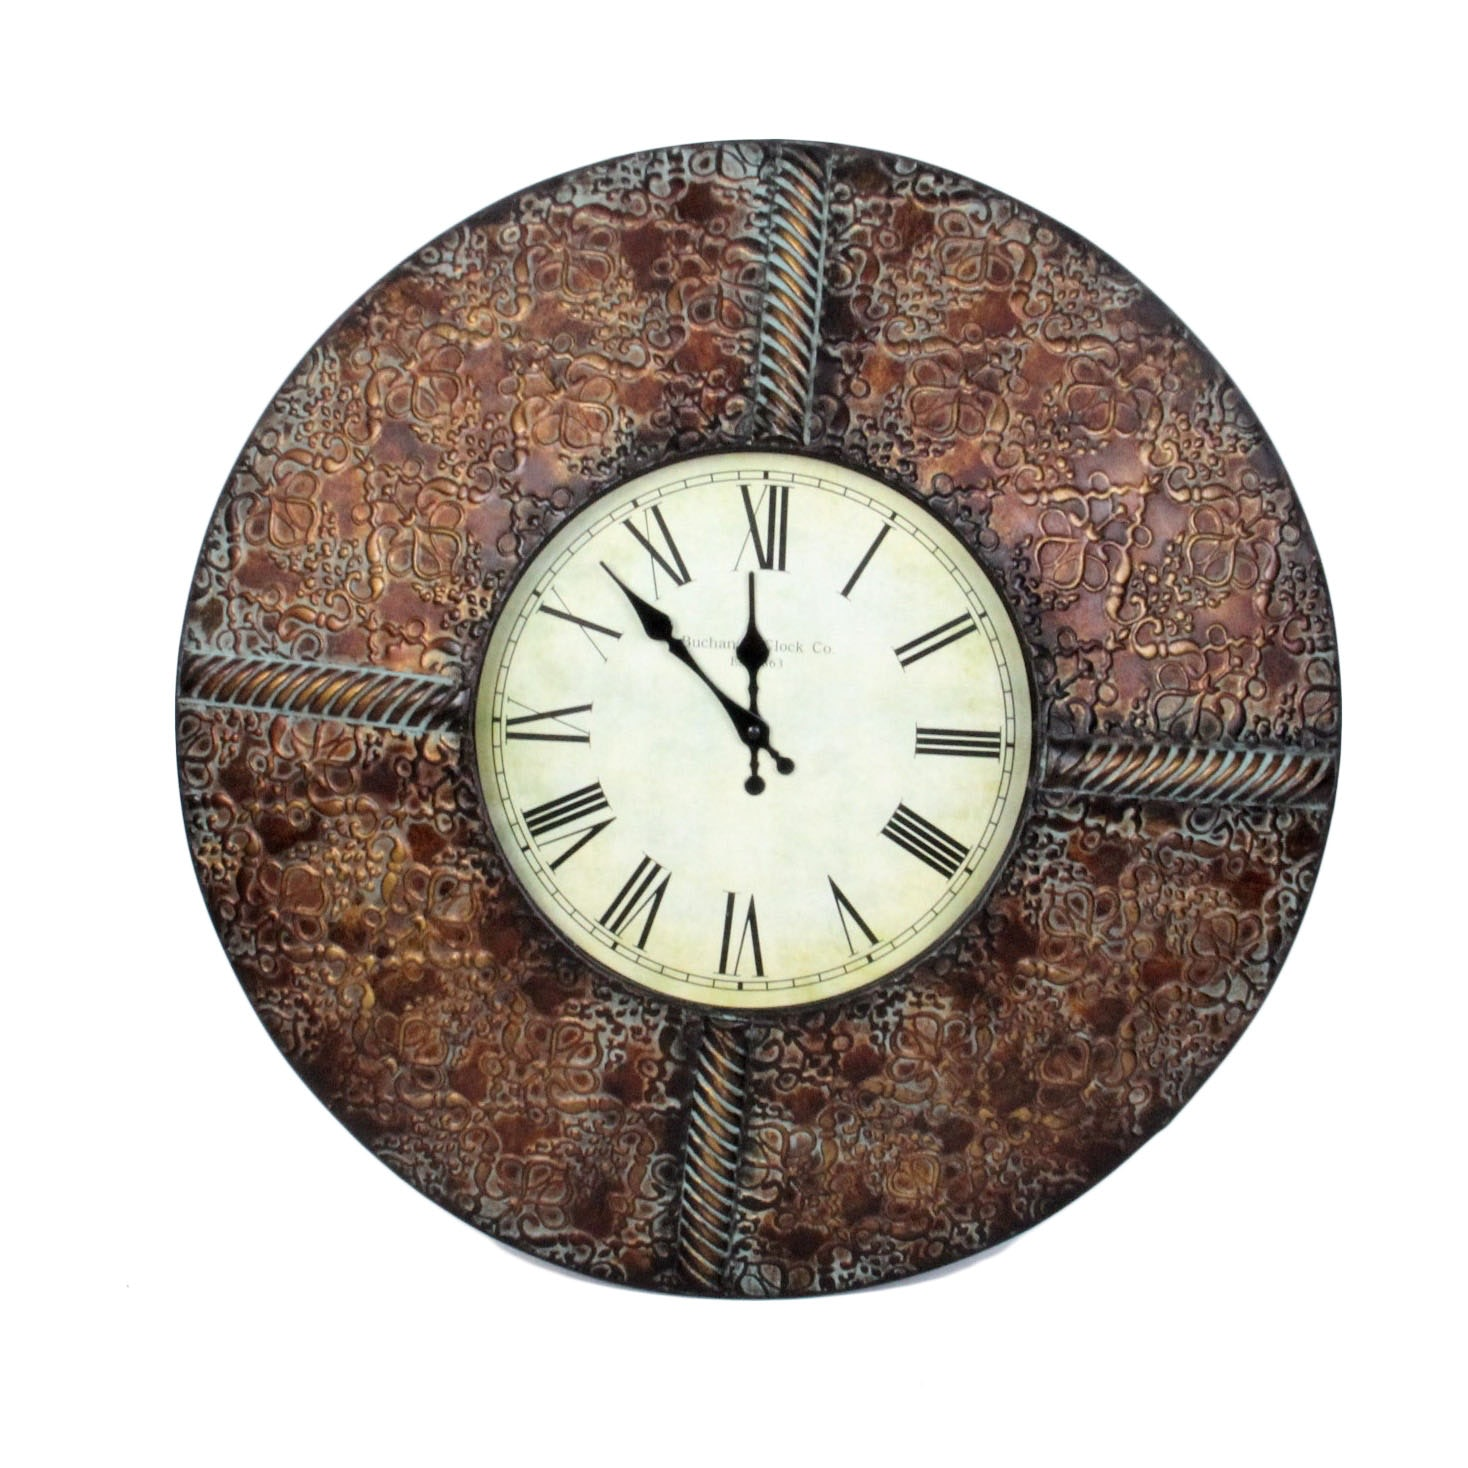 Buchanan Clock Co. Round Metal Wall Clock : EBTH